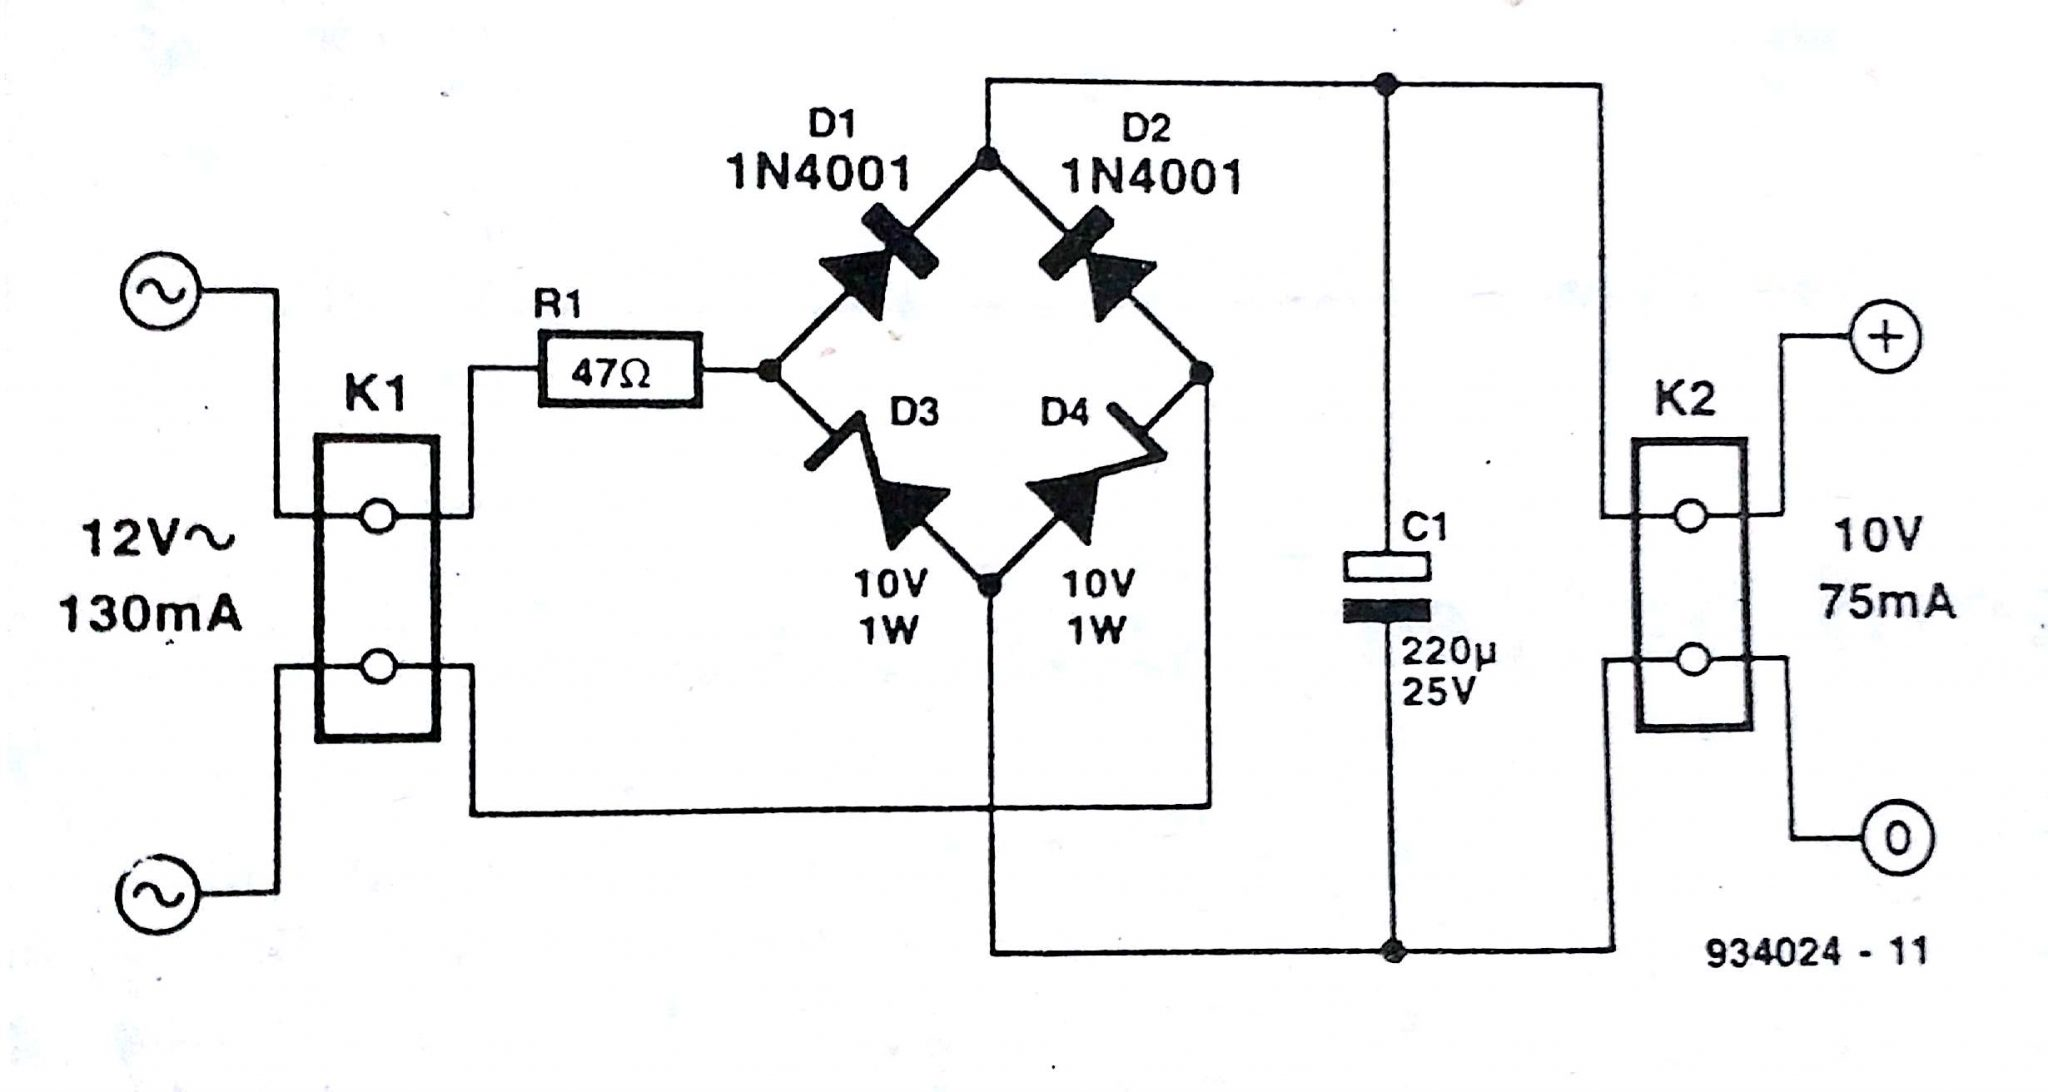 12v Power Supply Wiring Diagram